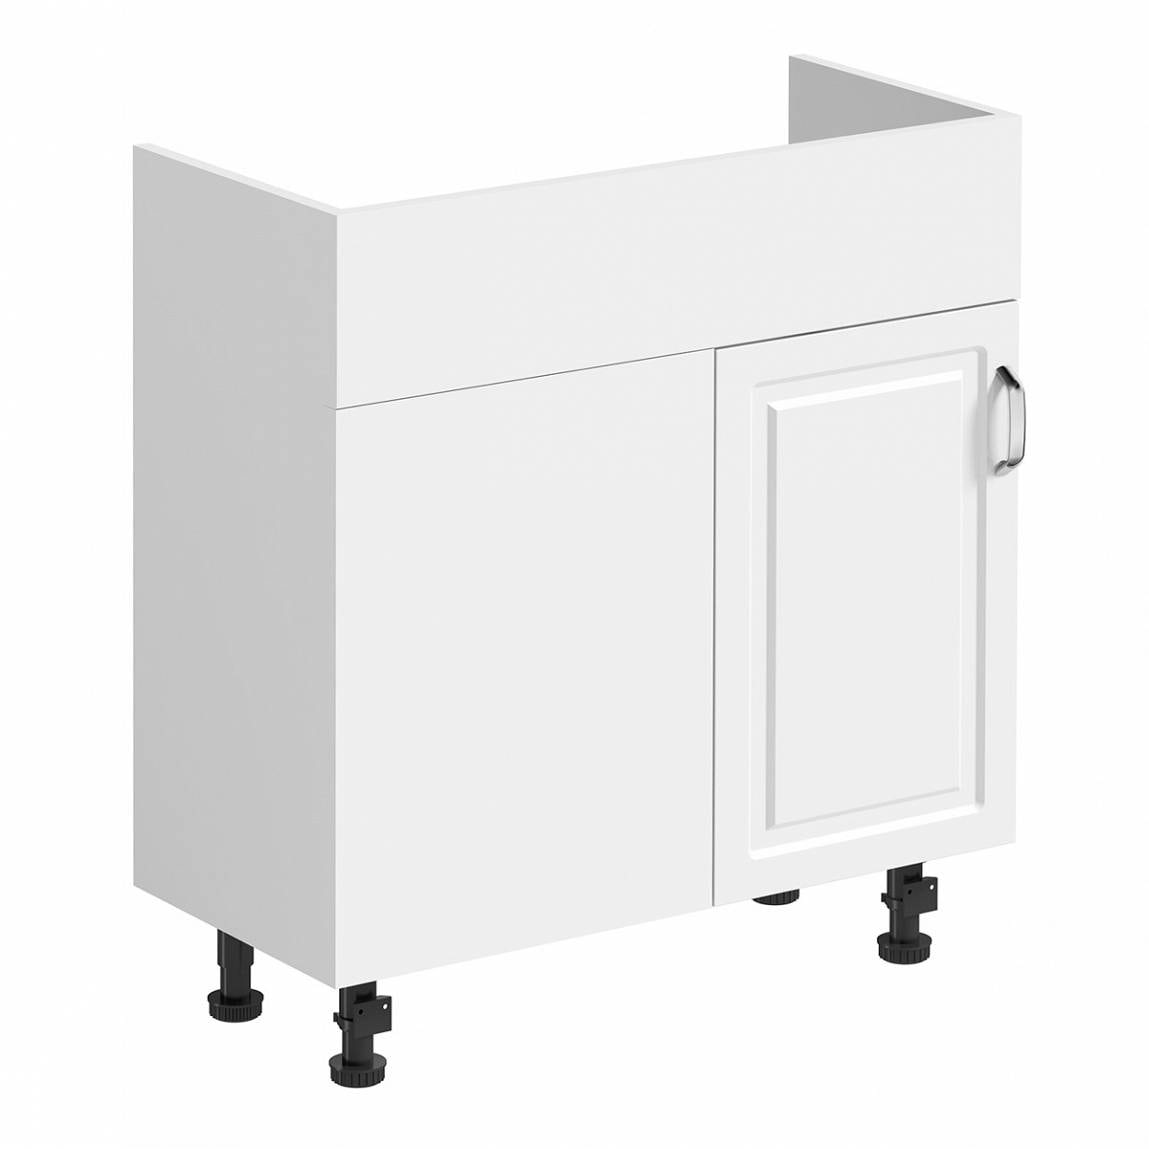 Orchard Florence white universally handed corner unit 700mm